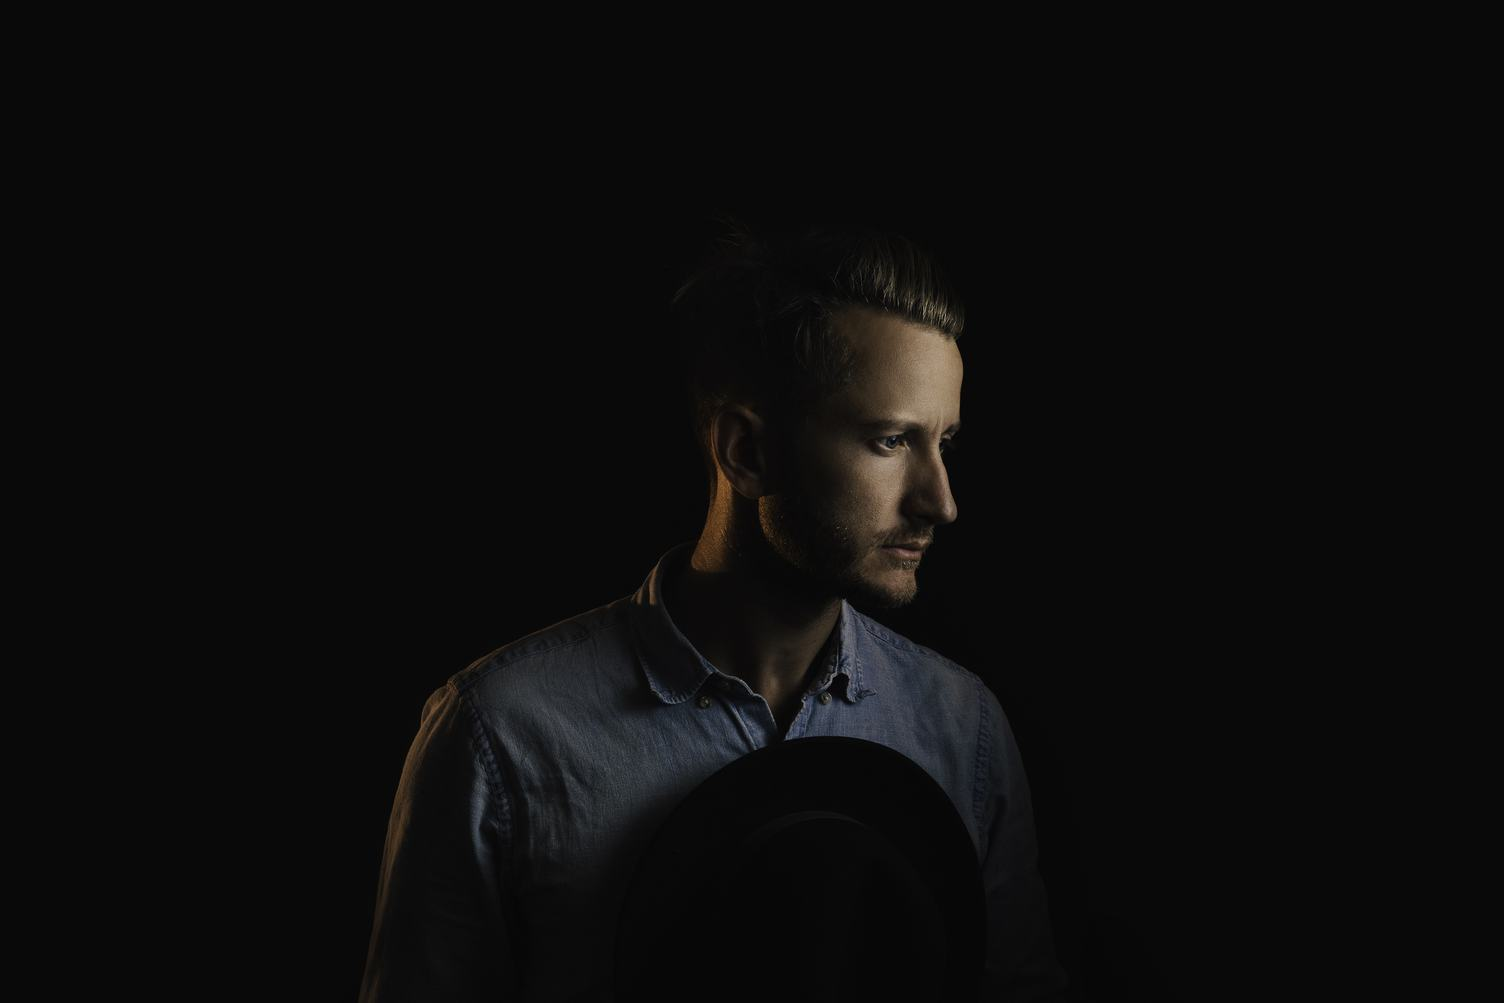 Pensive Man Profile Portrait on Dark Background